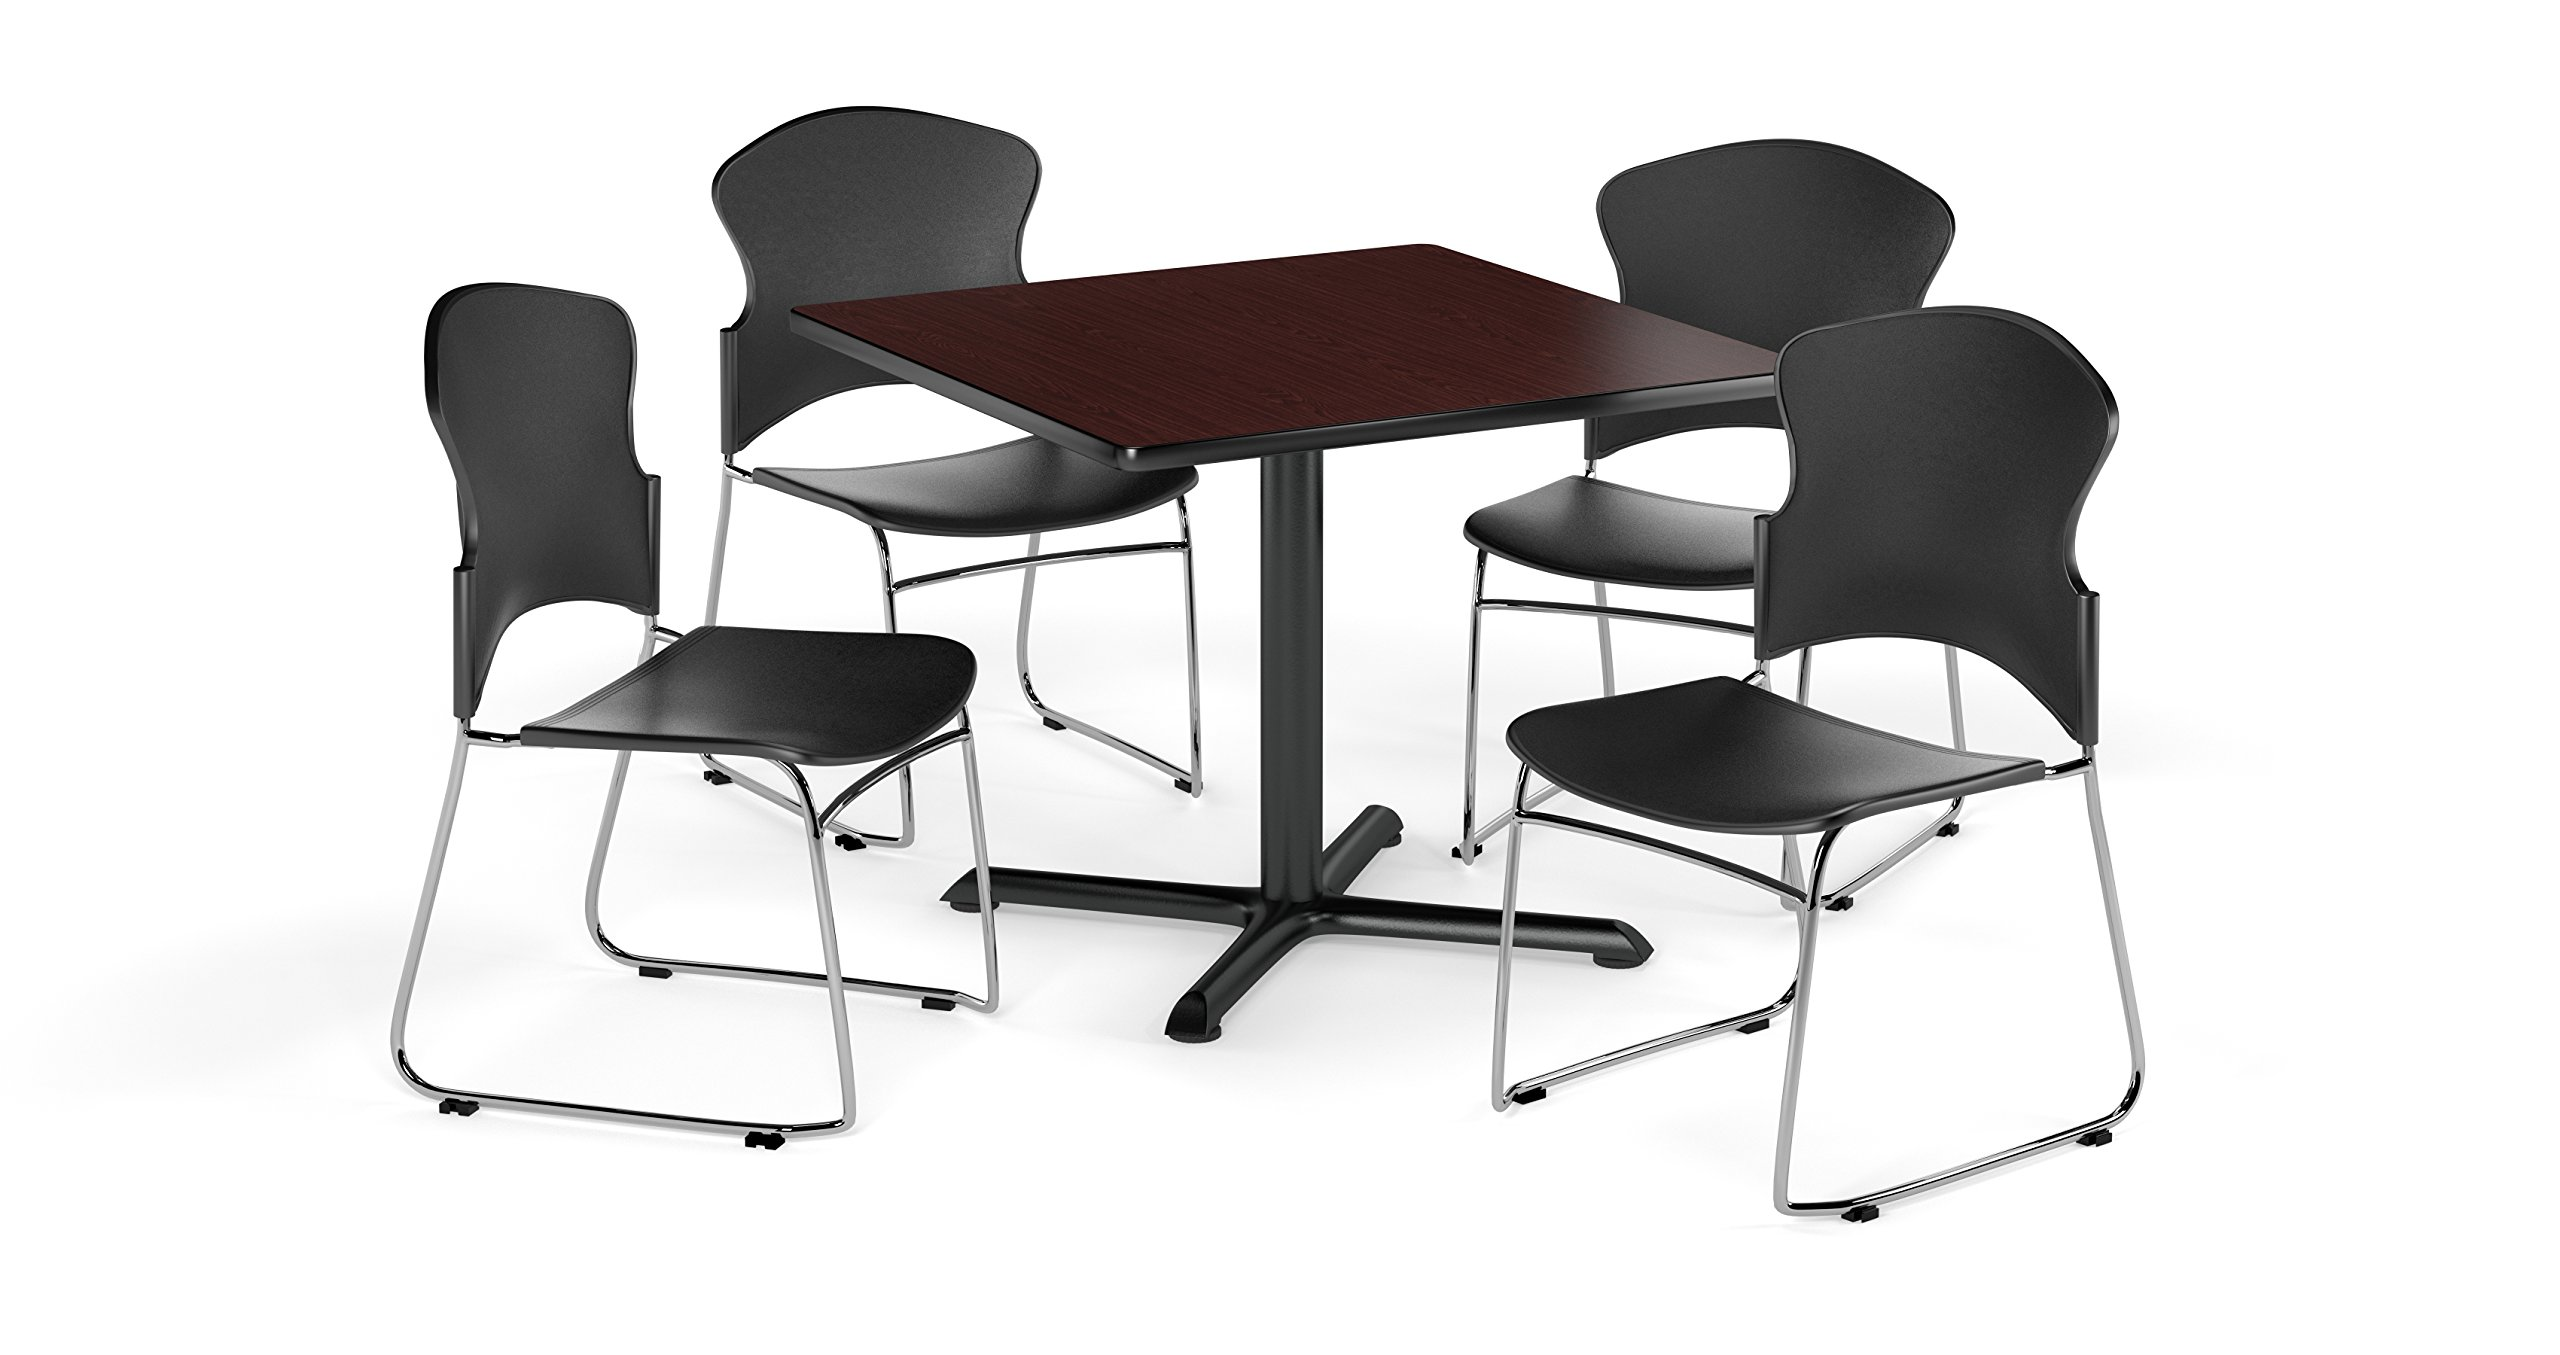 OFM PKG-BRK-034-0010 Breakroom Package, Mahogany Table/Black Chair